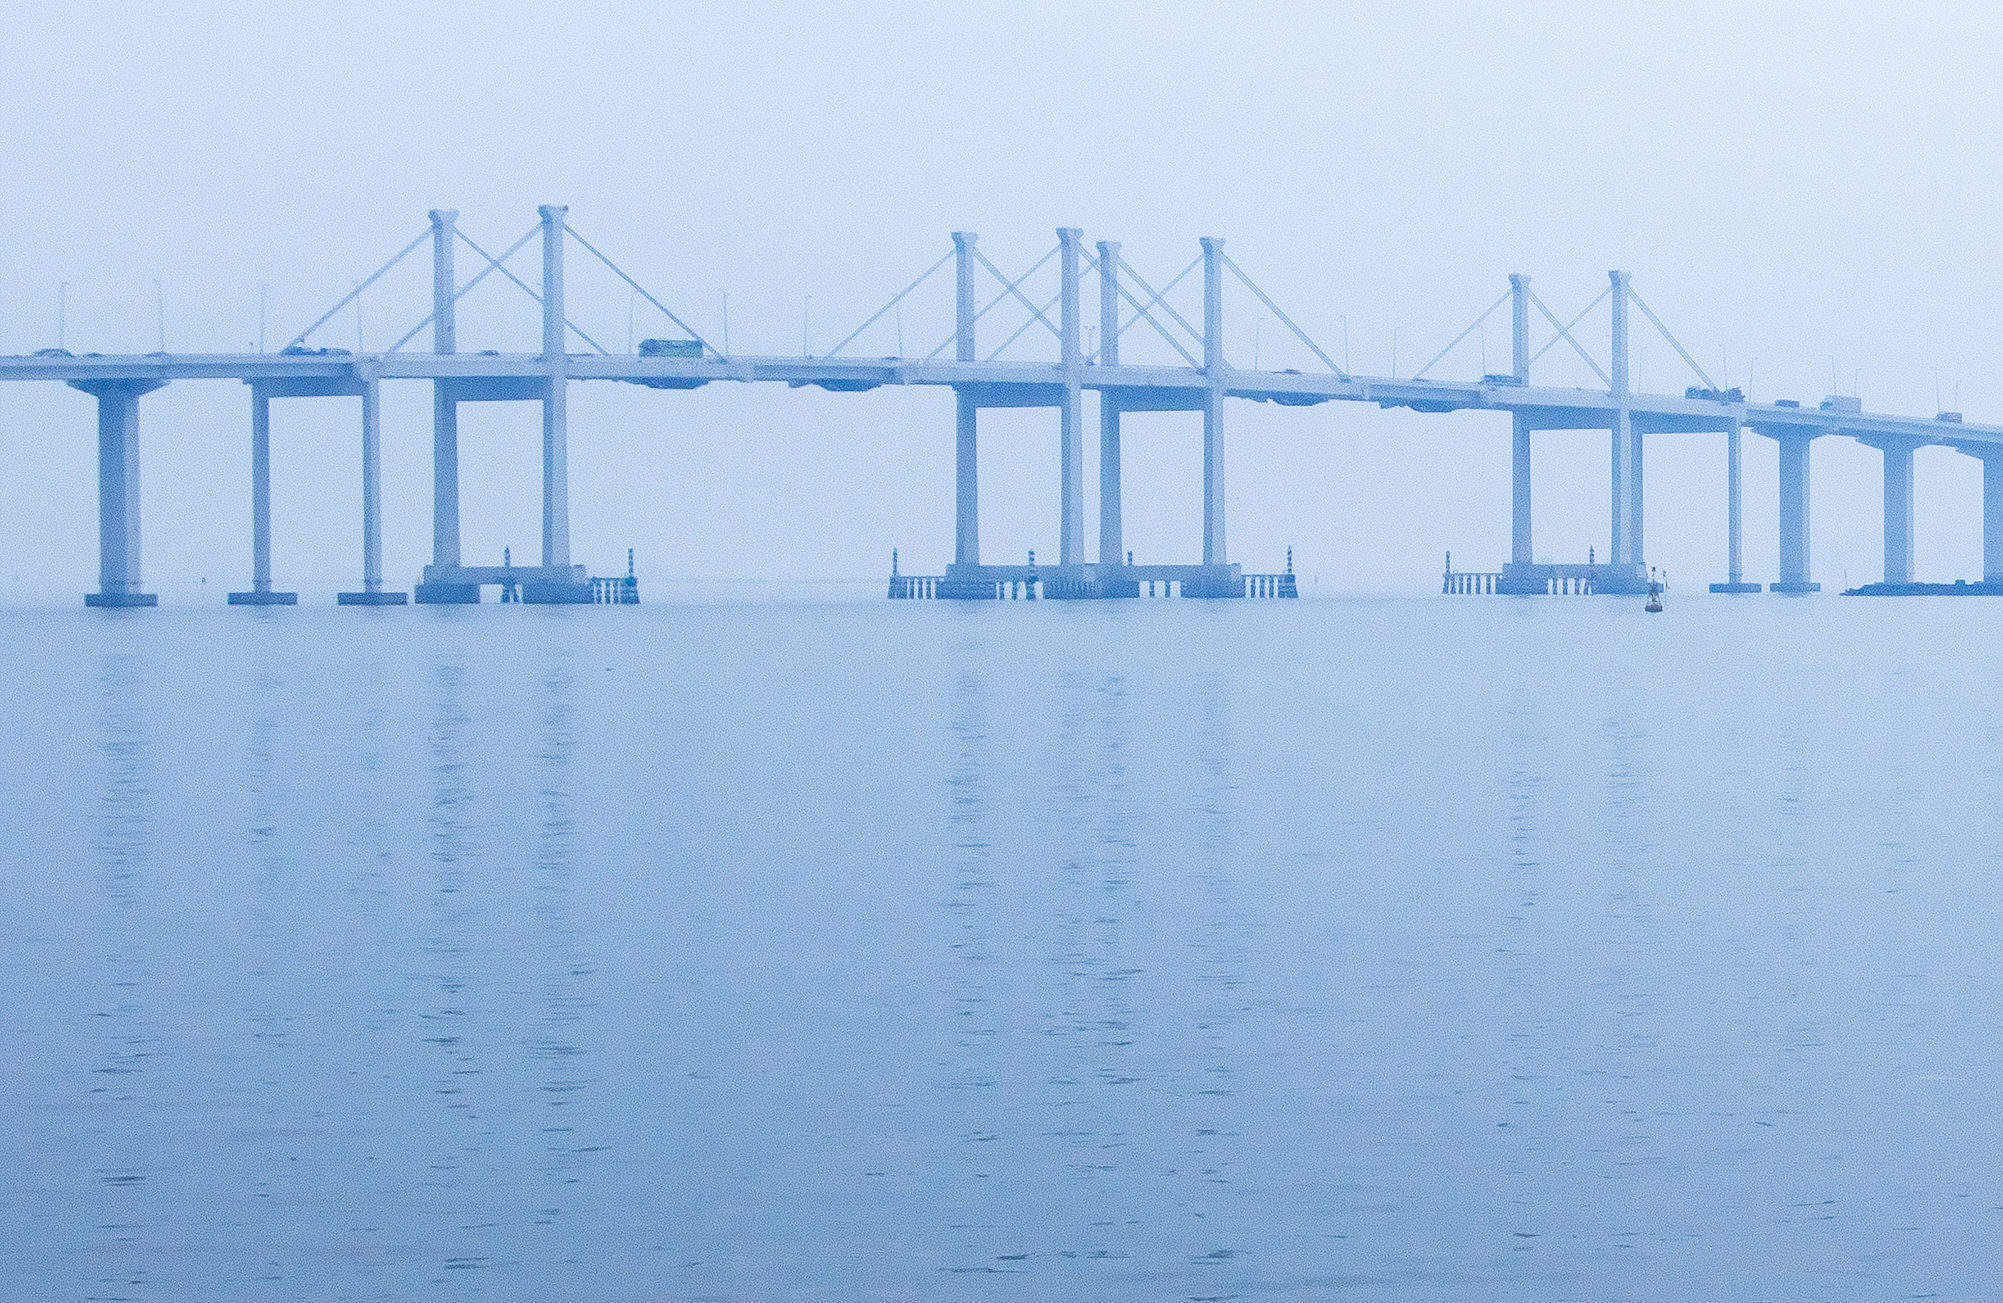 Hong Kong-Zhuhai-Macau Bridge - Verdict